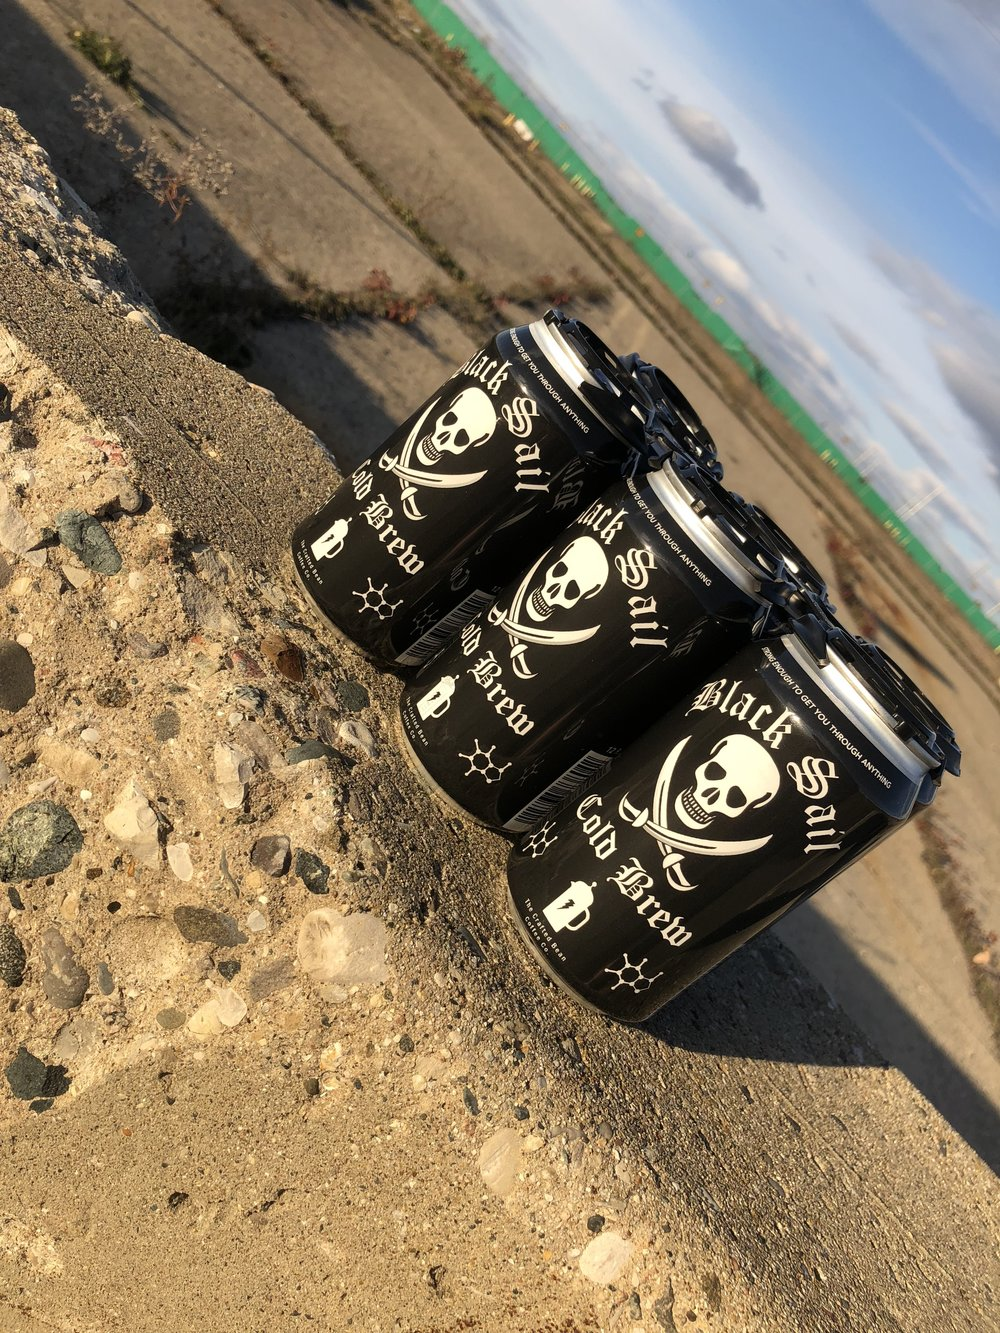 Black Sail Cold Brew Coffee - The rebirth of our Black Sail Cold Brew, Strong enough to get you through anything!-6 pack of cans-